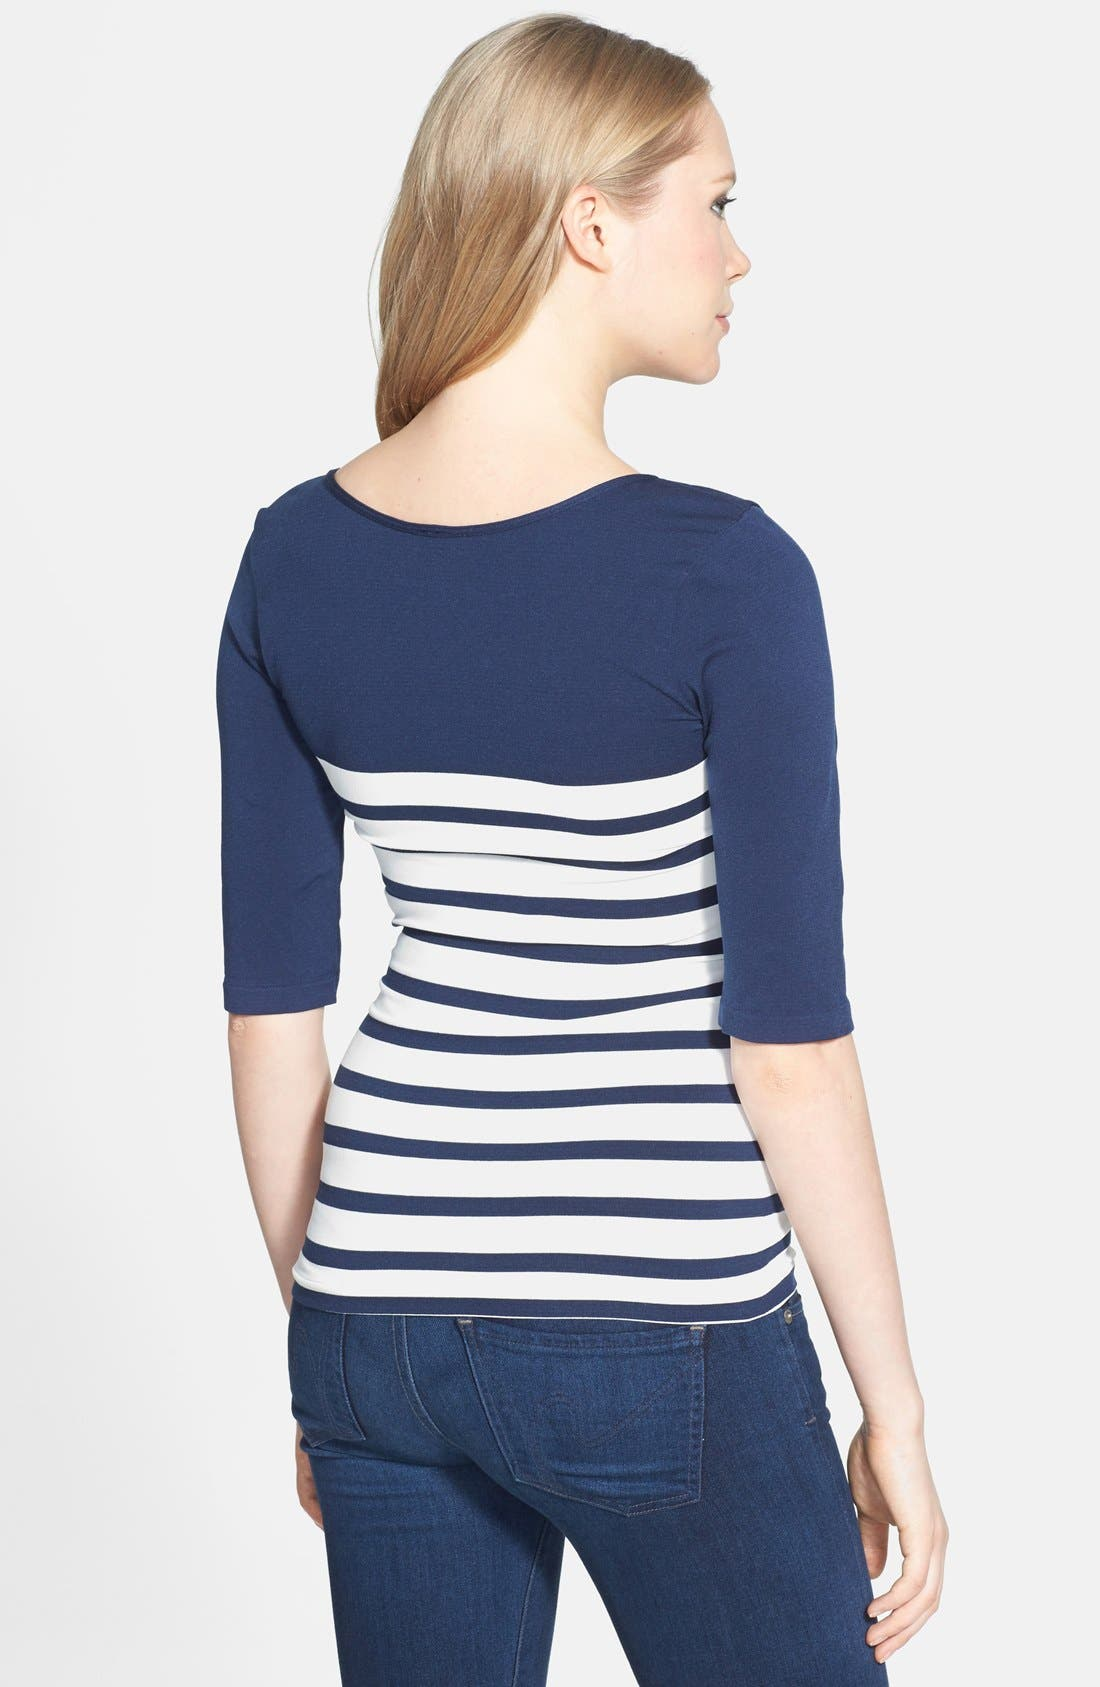 'St. Barts' Ballet Sleeve Maternity Top,                             Alternate thumbnail 7, color,                             NAVY/ WHITE